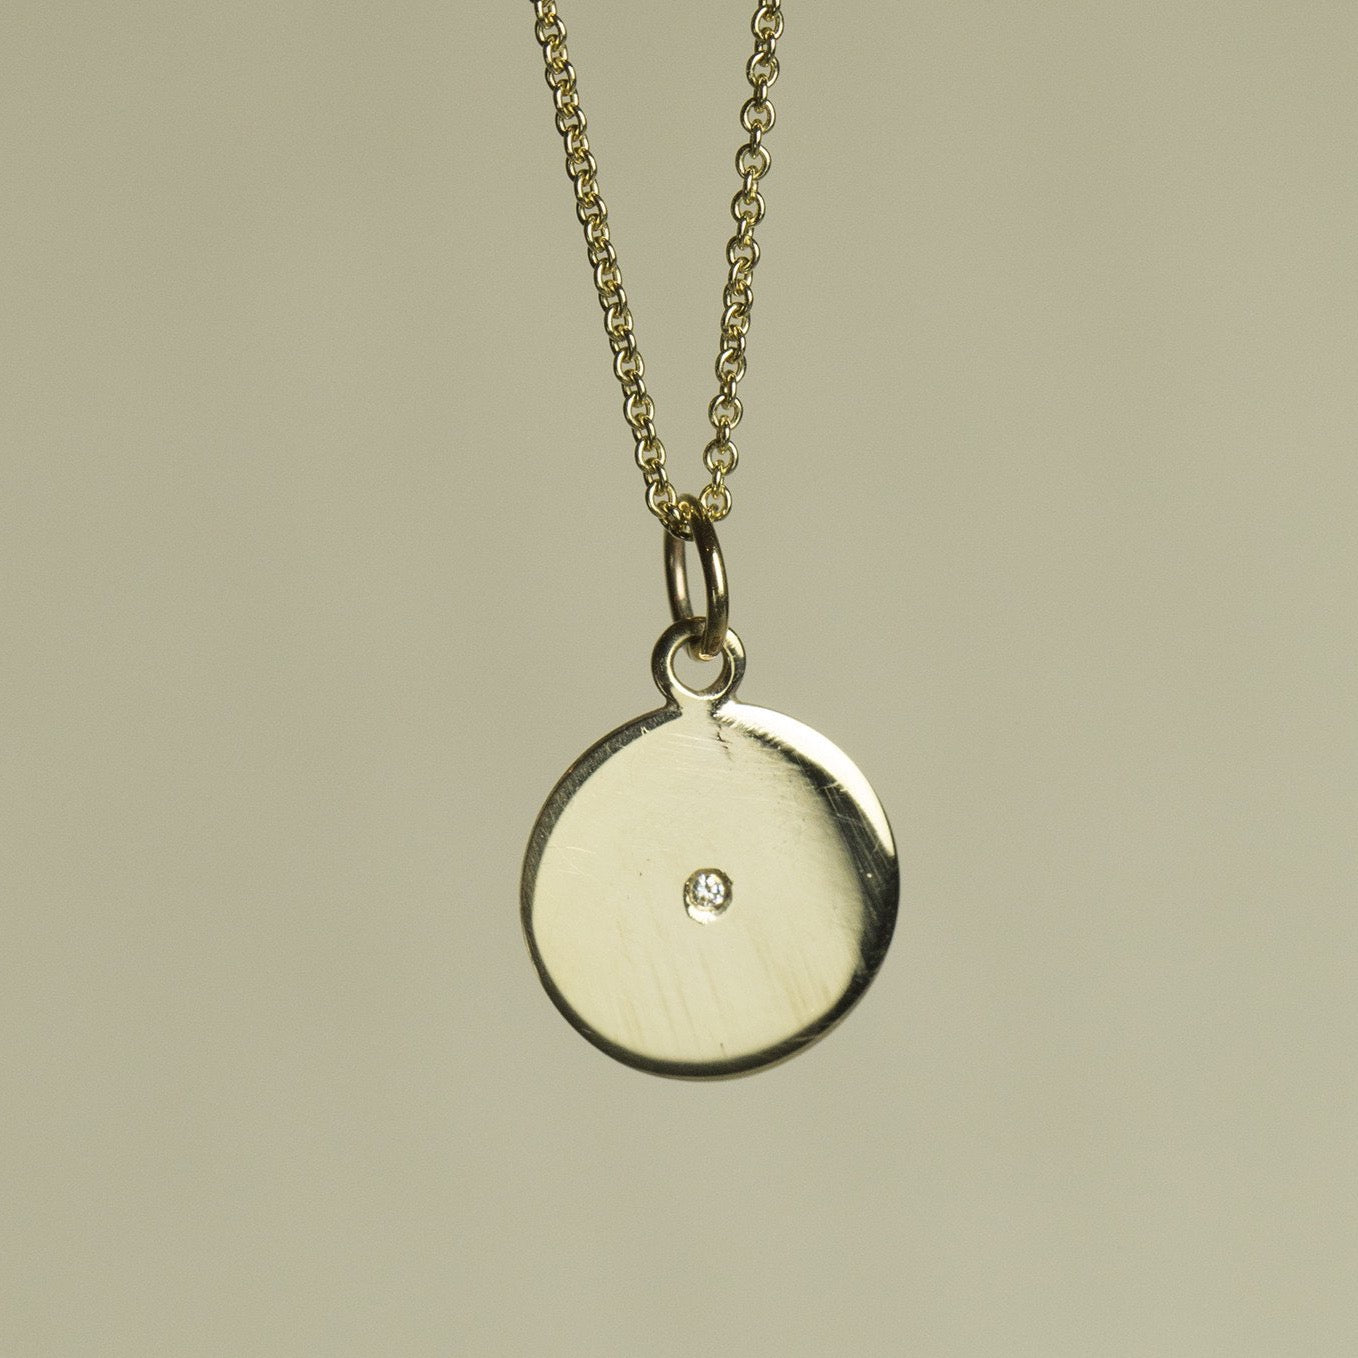 felt's own design - incredibly simple and enchanting polished gold disc with diamond on 9 carat gold chain